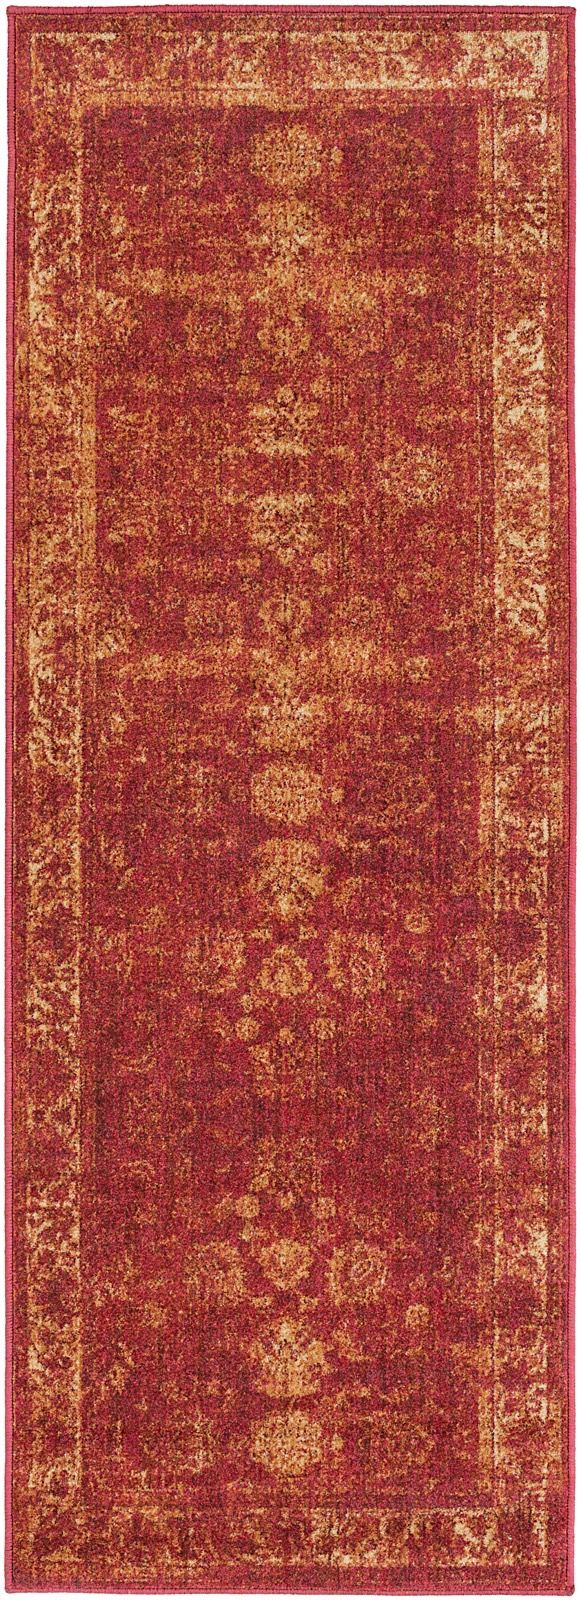 surya hathaway traditional area rug collection